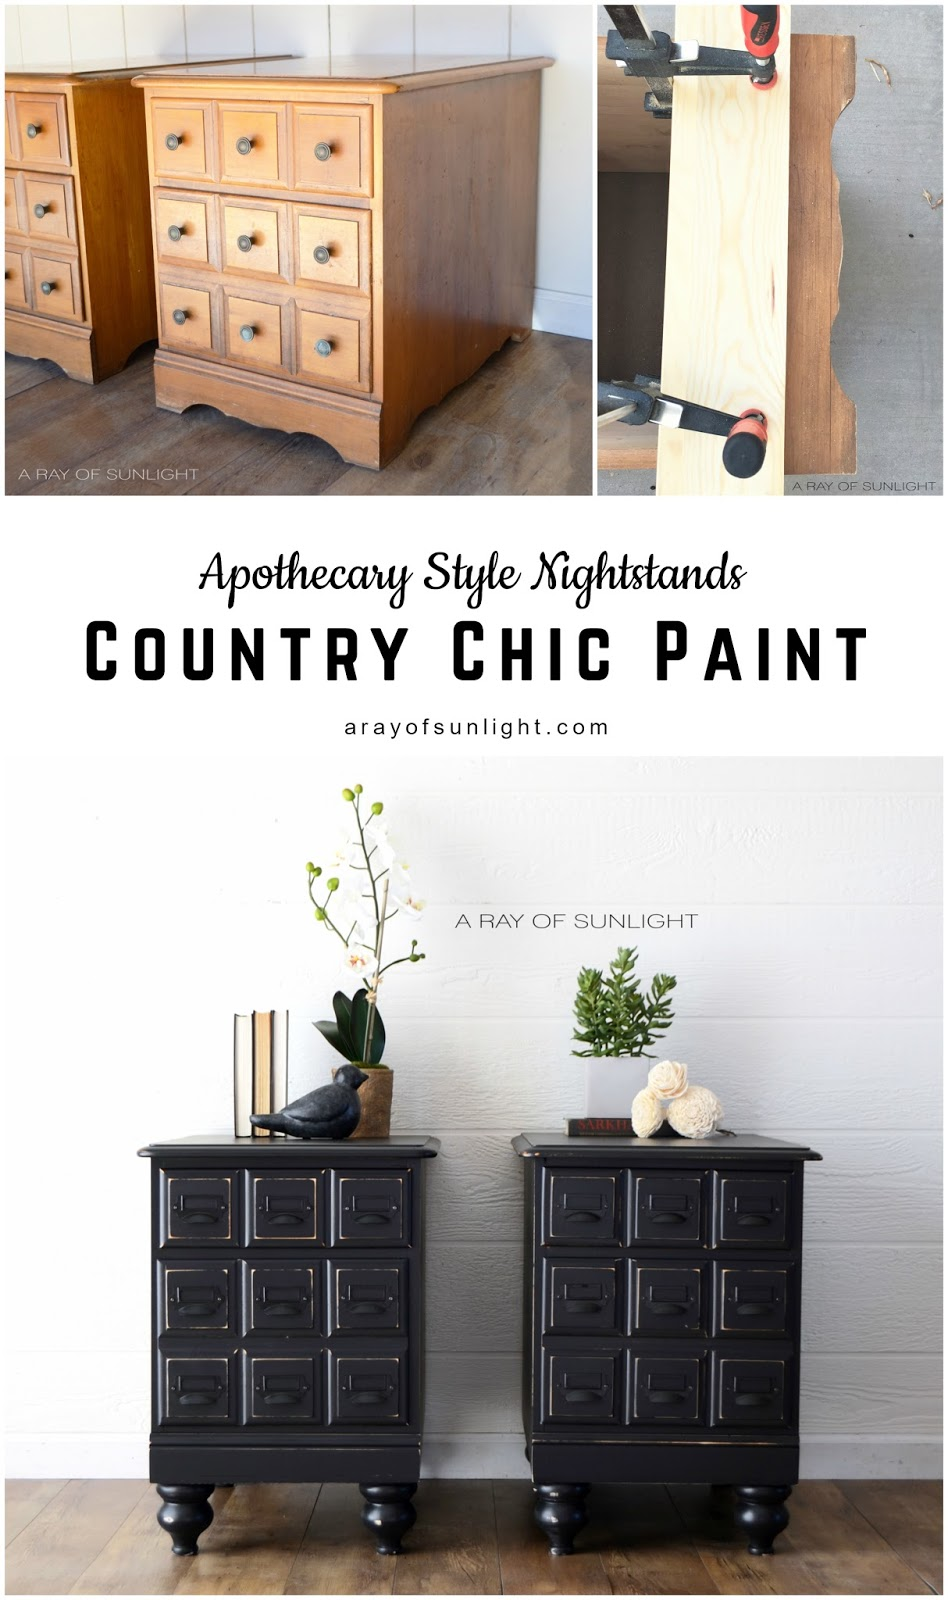 We found these vintage nightstands with amazing drawer fronts that resemble the ever so popular apothecary or card catalog style. We knew that we had to have them just because of that! But they came with one downside, they were pretty short! Bummer. With some help from the circular saw, some new legs and of course, Country Chic Paint, we were able to transform these old nightstands into an amazing one of a kind set! A Ray of Sunlight #countrychicpaint #paintedfurniture #apothecary #furnituremamkeover #vintagemodern #blackfurniture #farmhousedecor